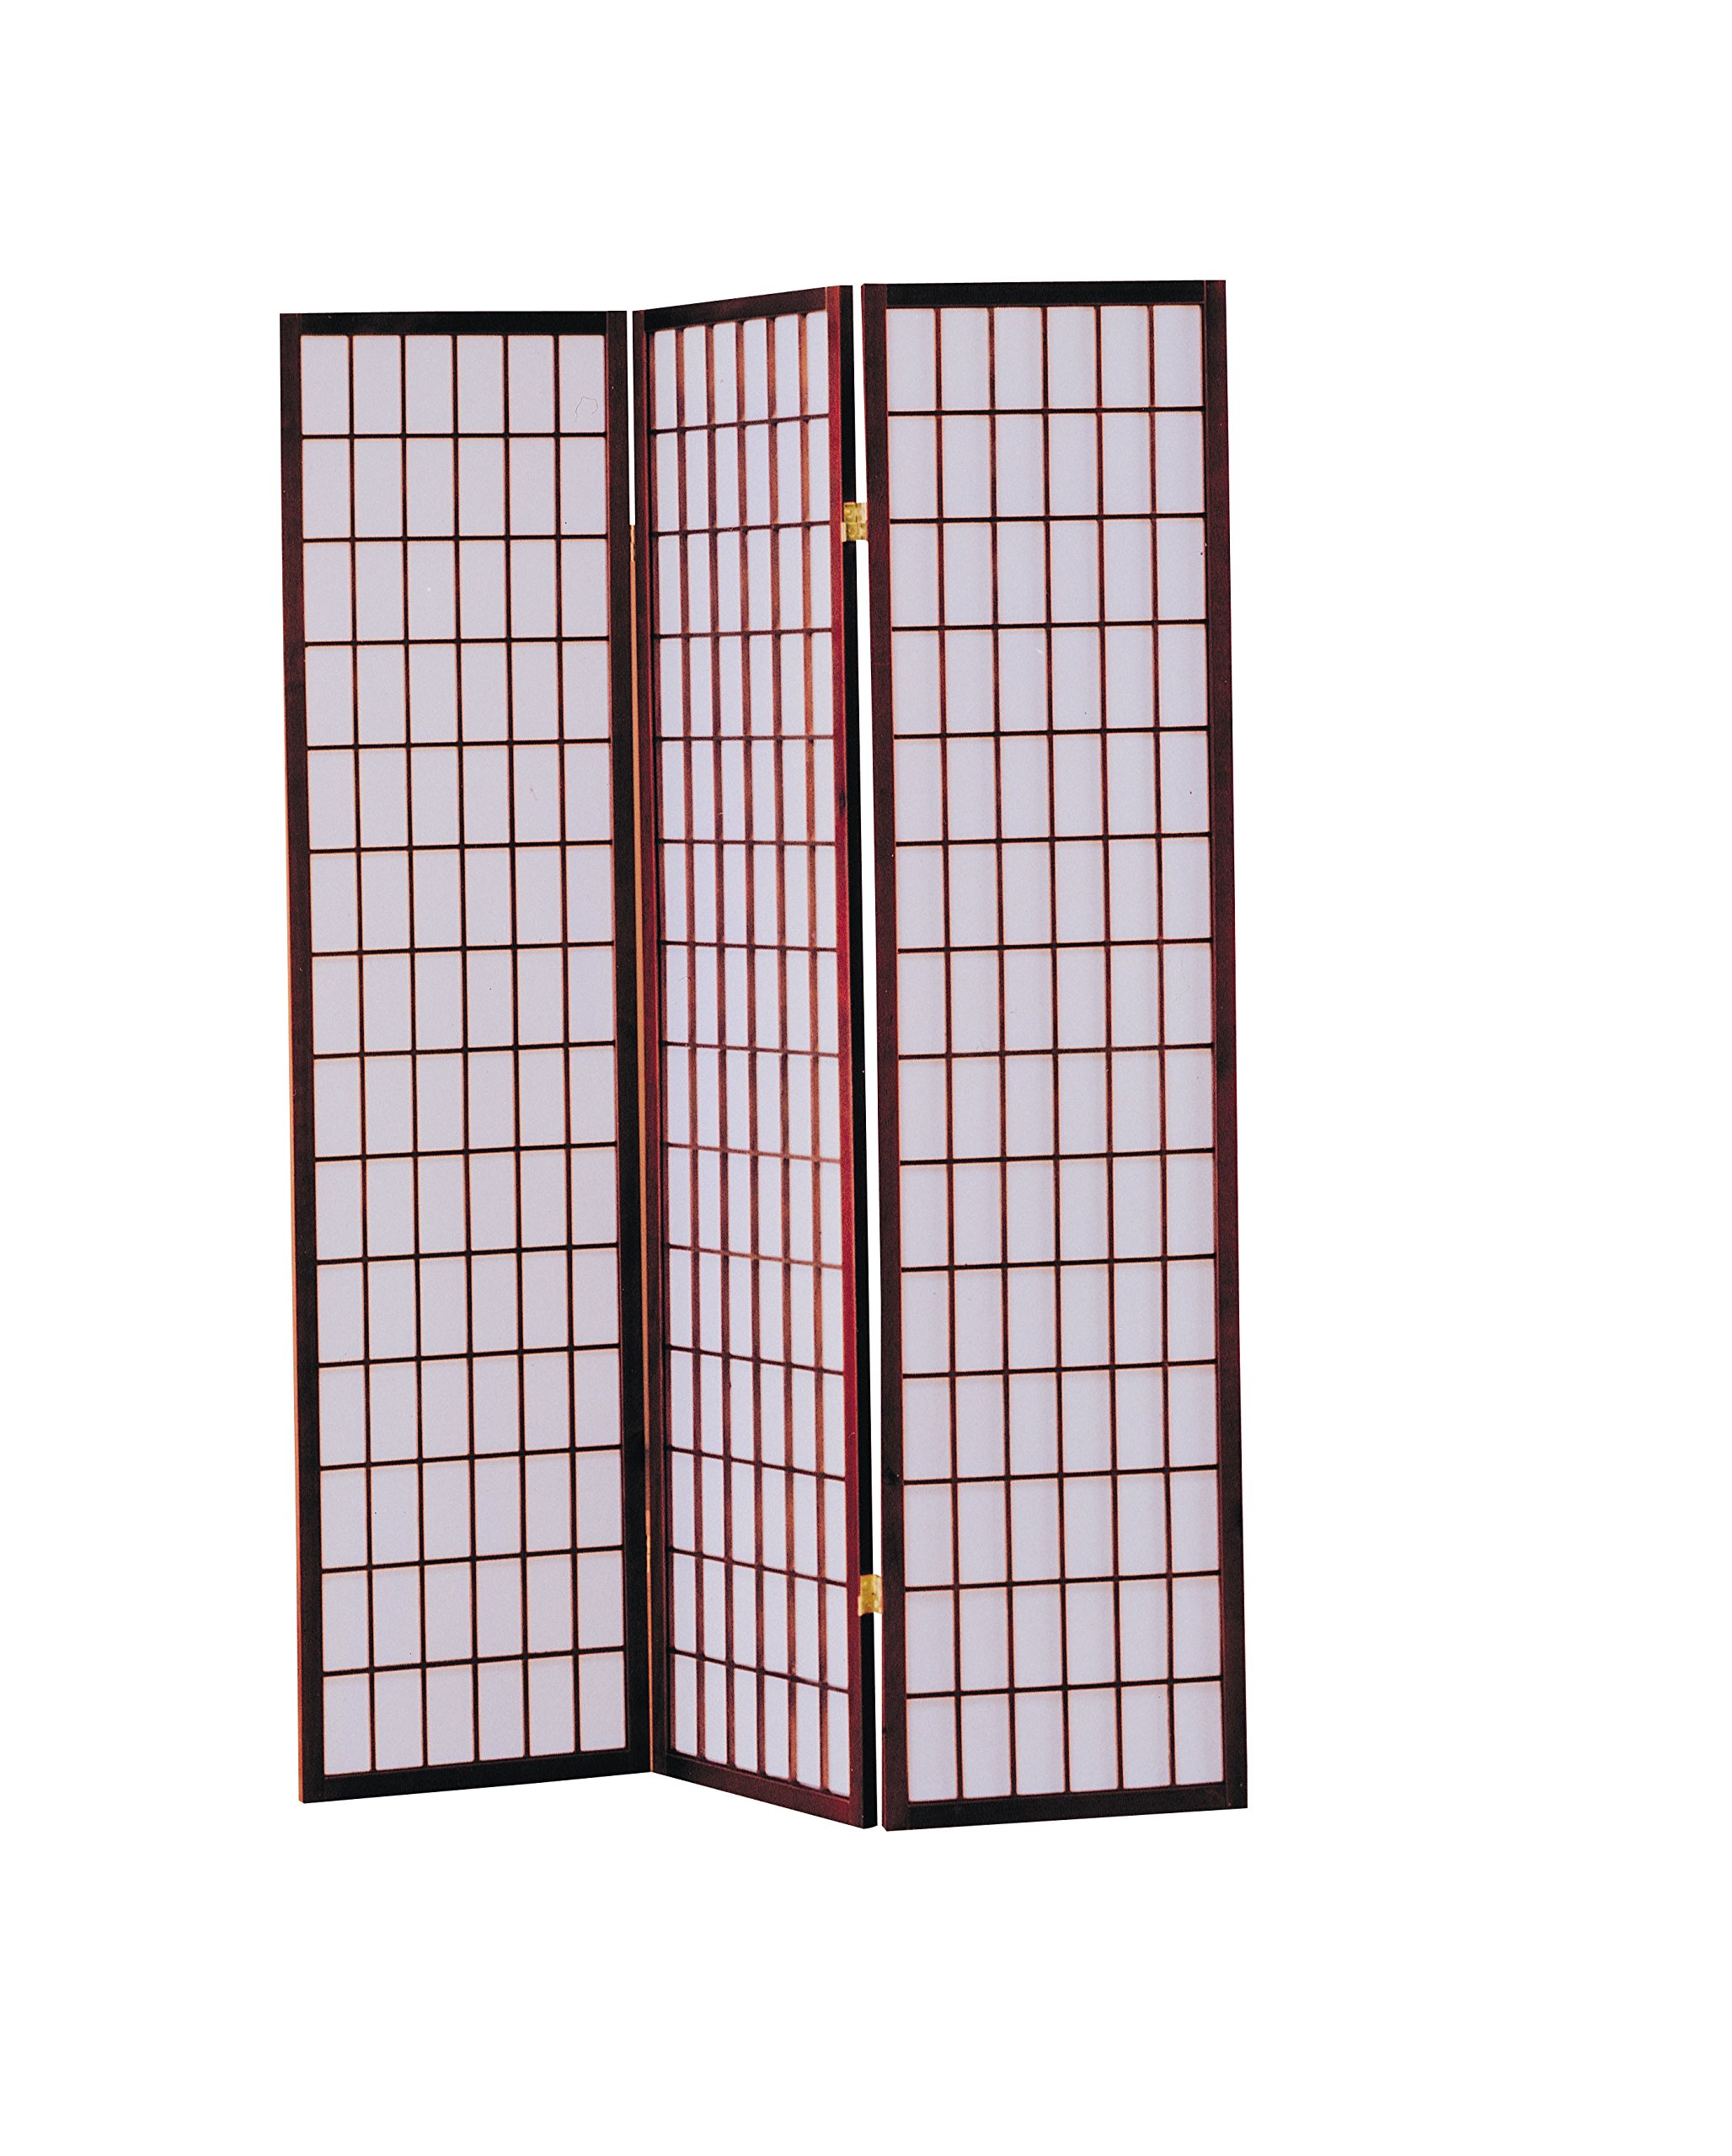 ACME 02277 Naomi 3-Panel Wooden Screen, Cherry Finish by acme